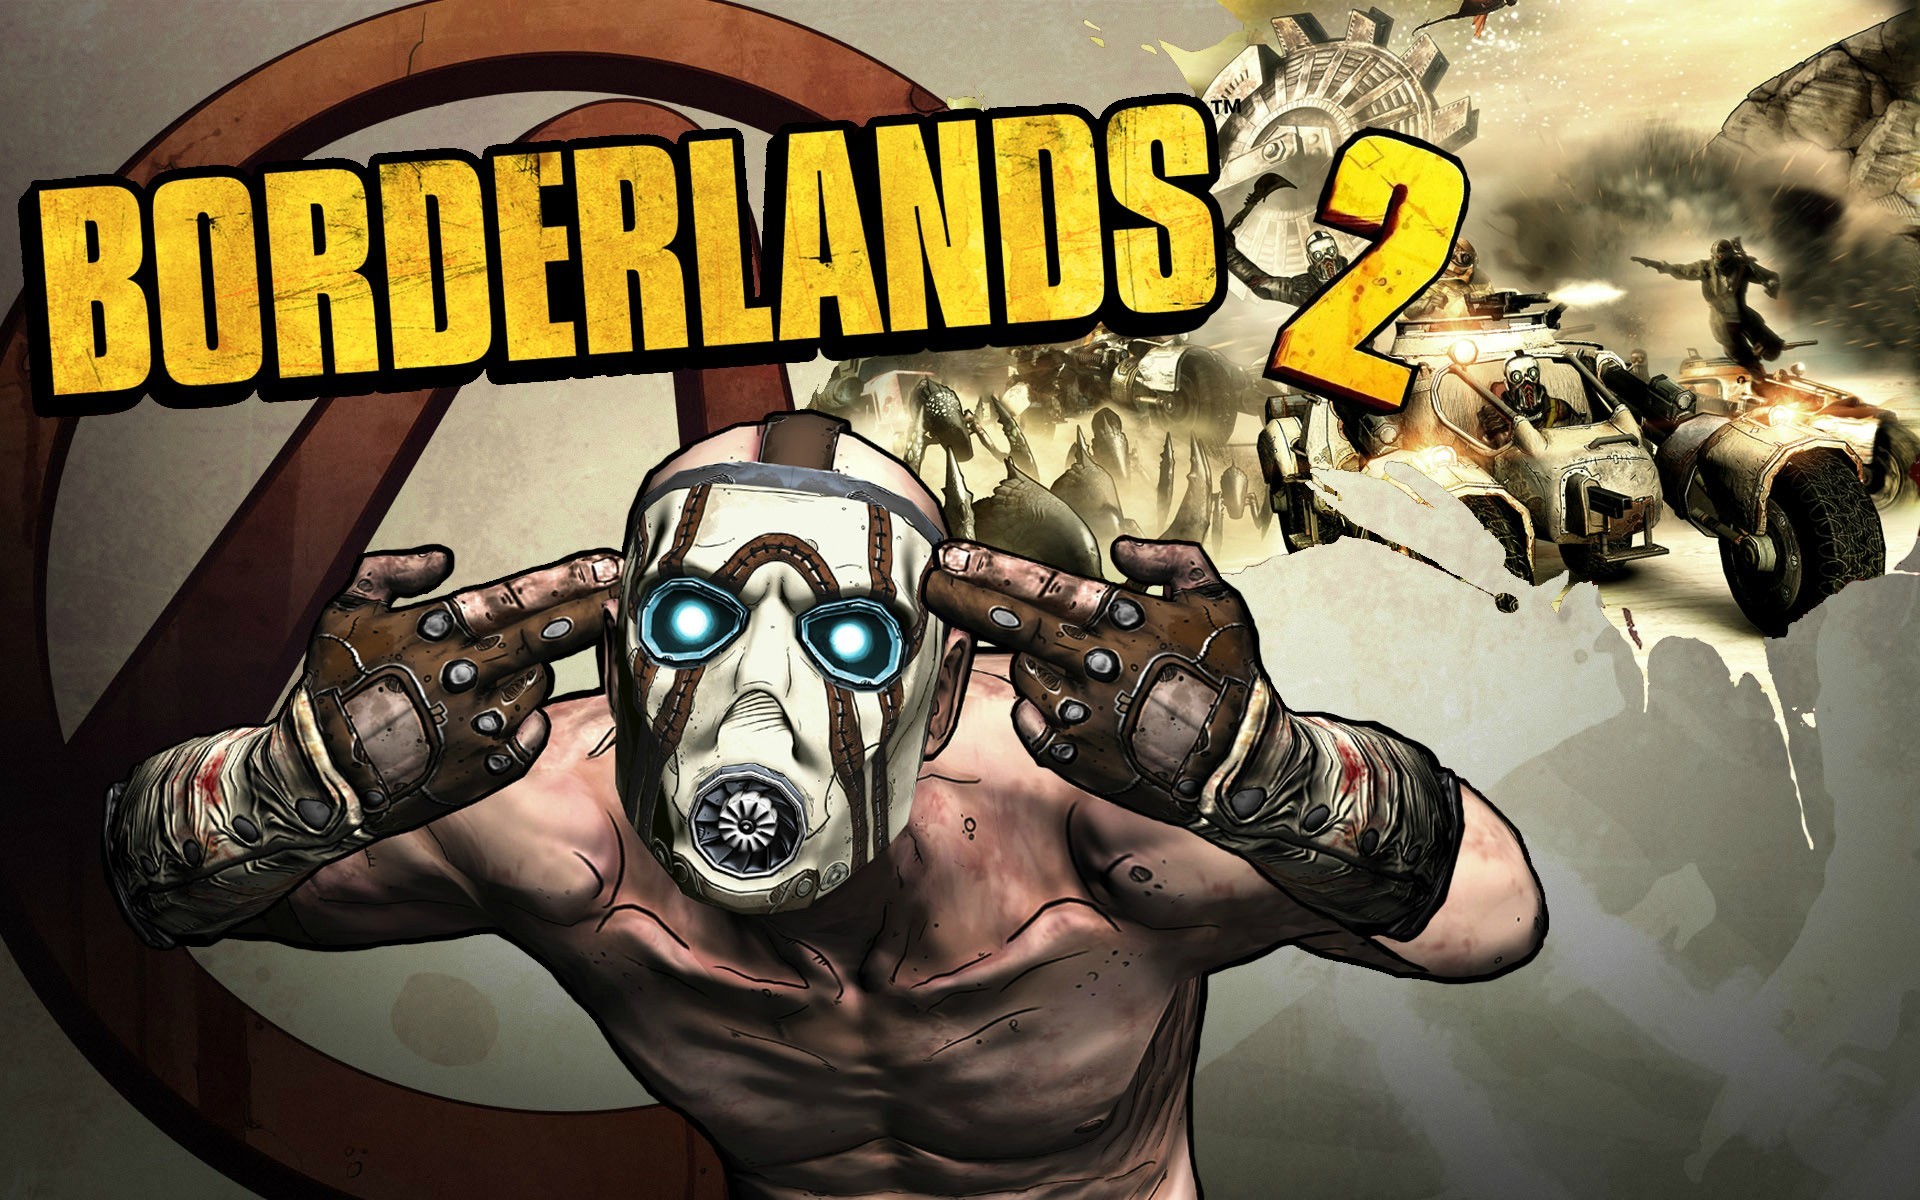 Borderlands 2 Wallpaper A5 - HD Desktop Wallpapers